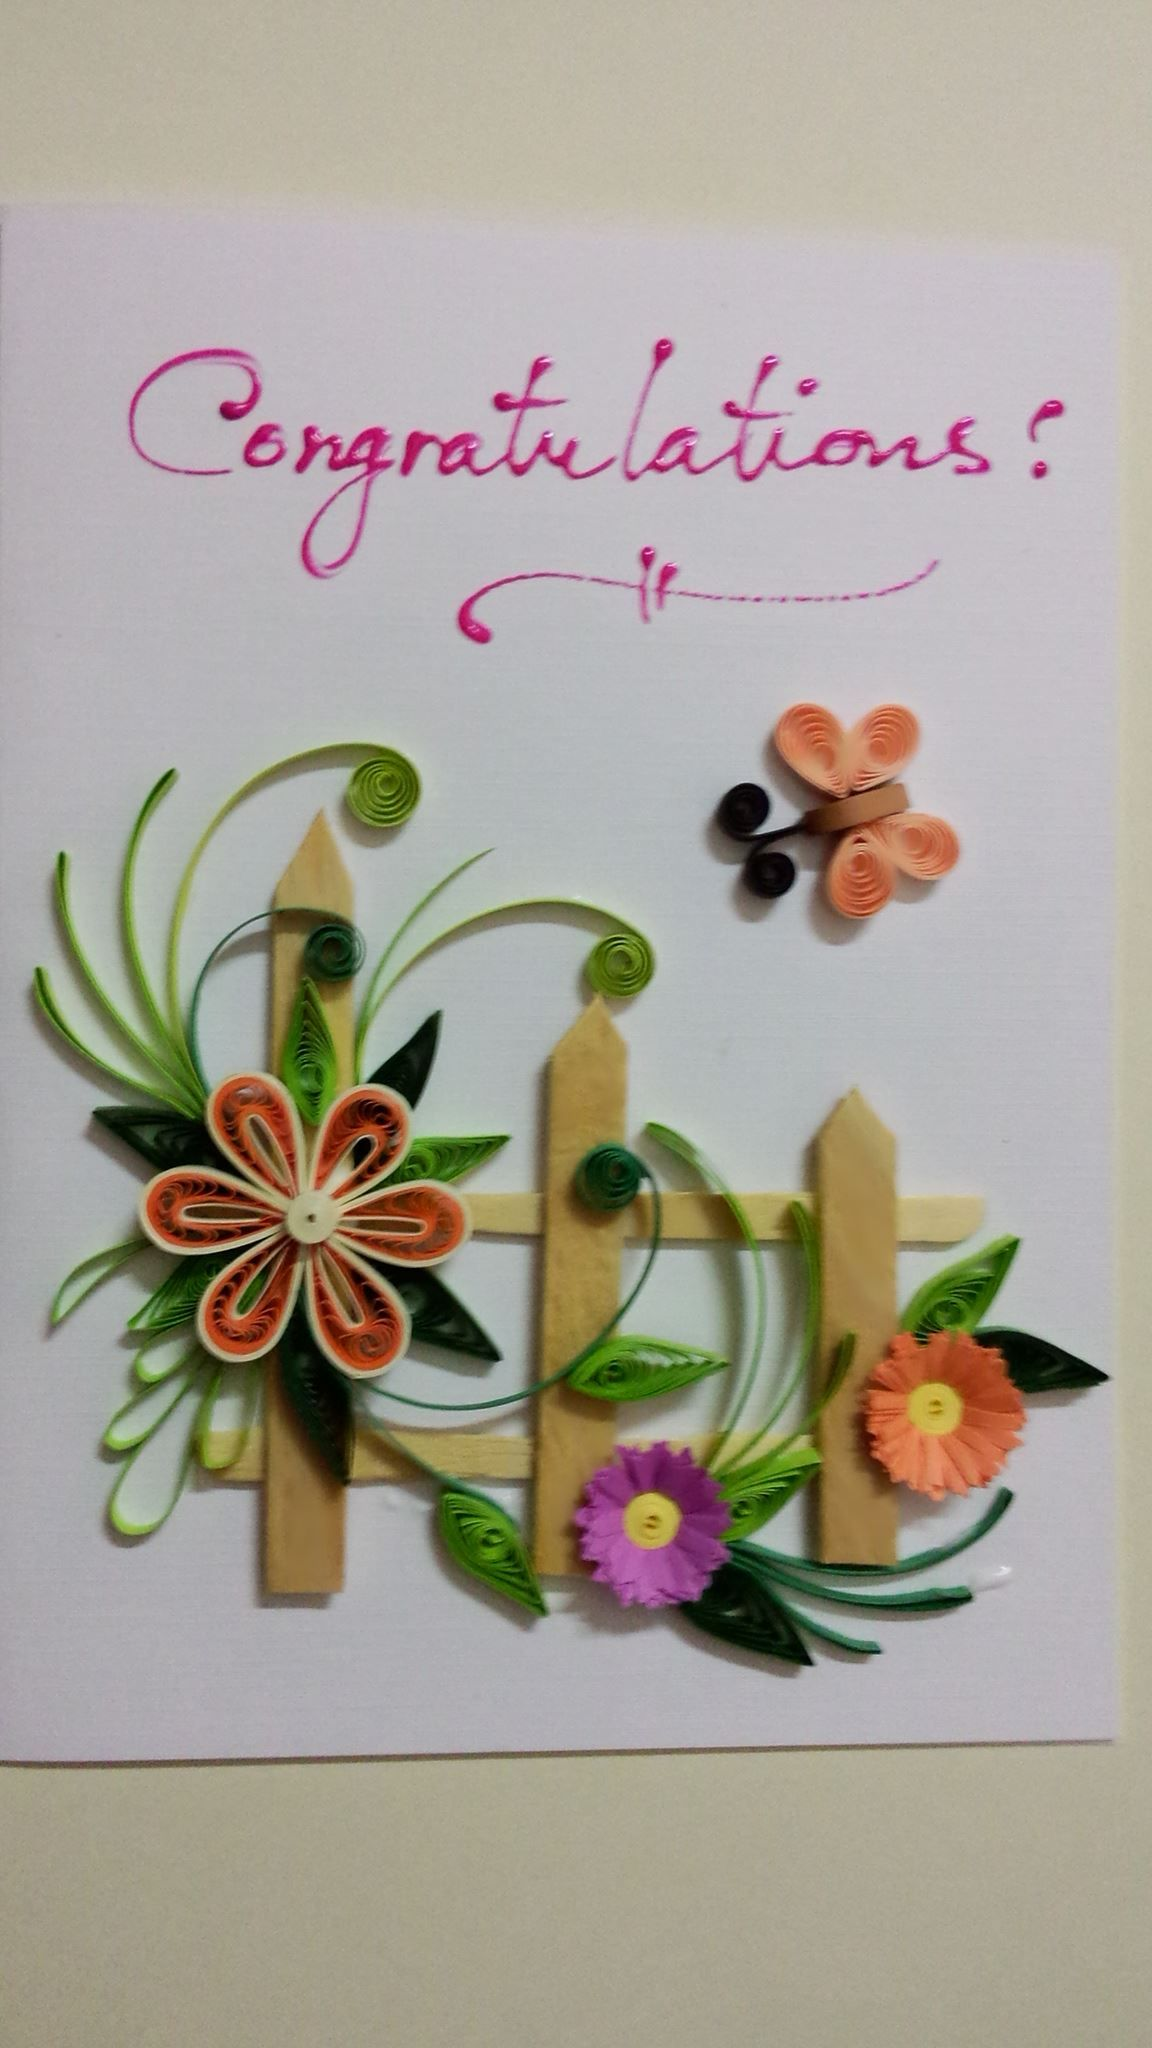 Pin by Beth 👣👣👣👣👣 on Quilling floral designs